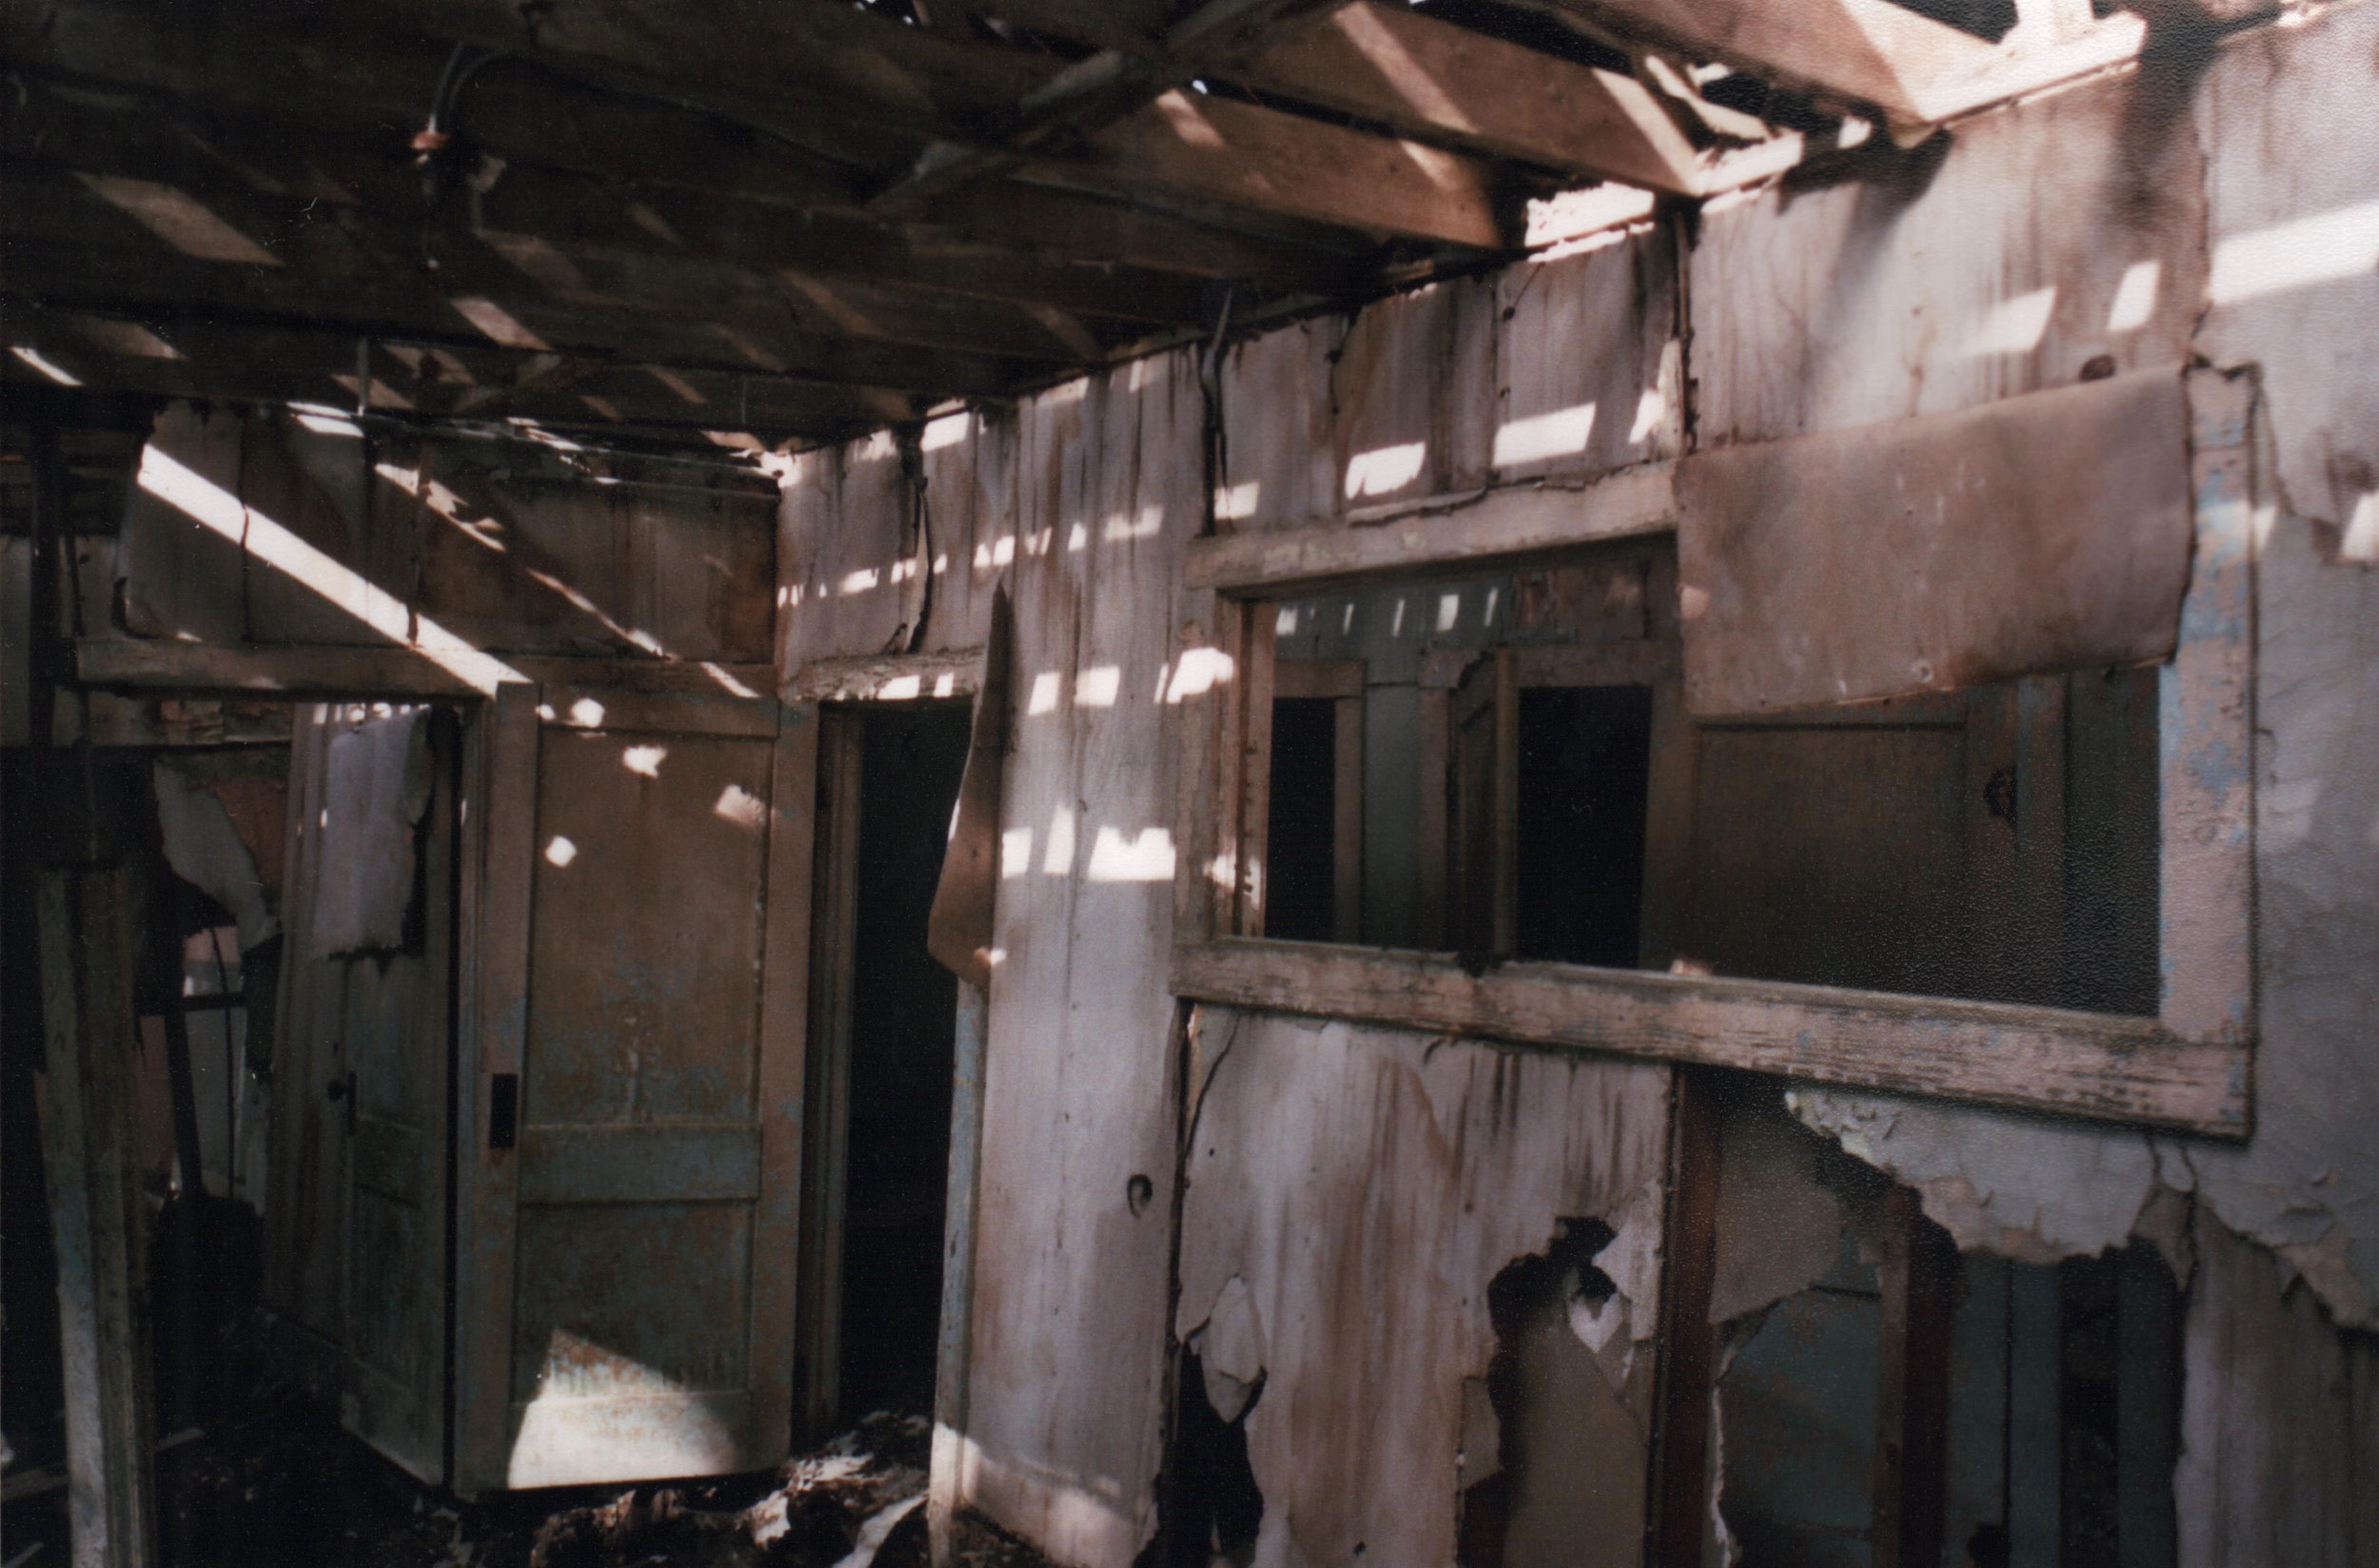 Order Up –   This was the part of the mess hall of the mining camp, order window and all.